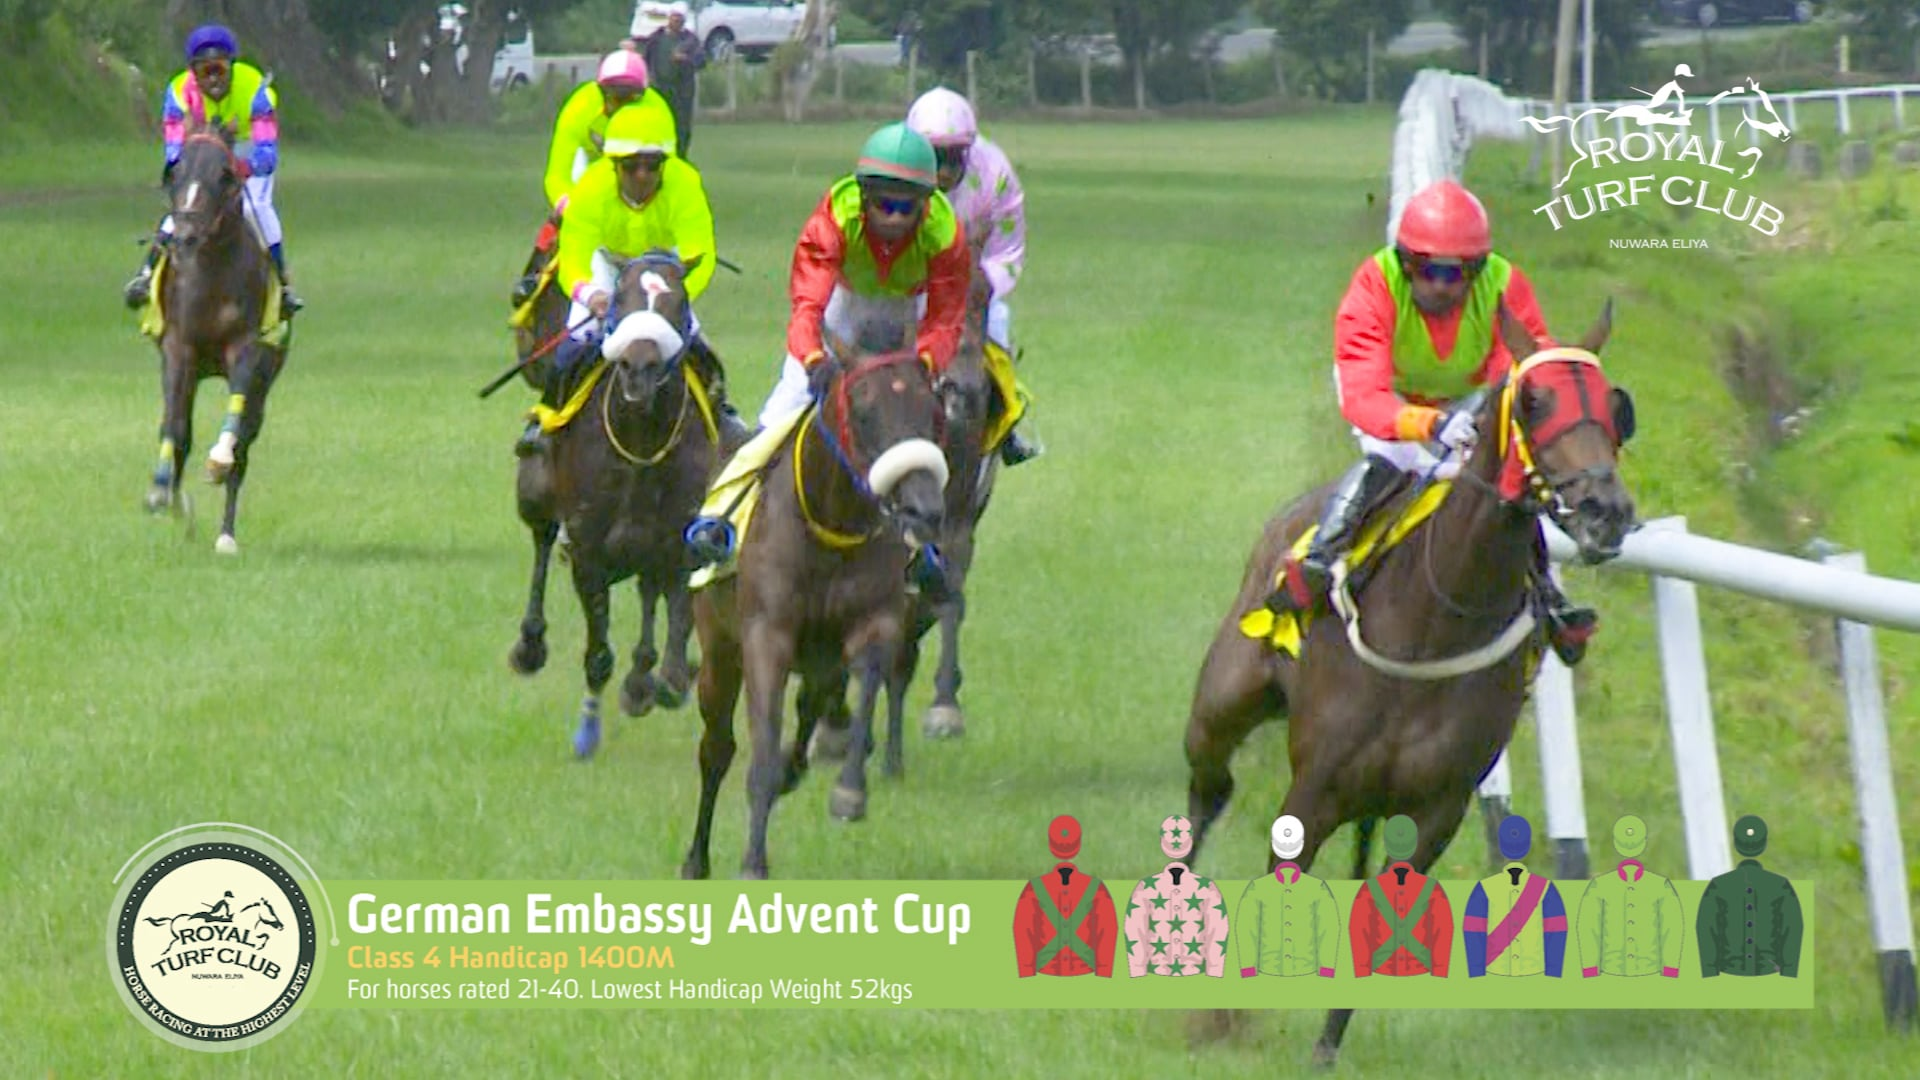 German Embassy Advent Cup 2016